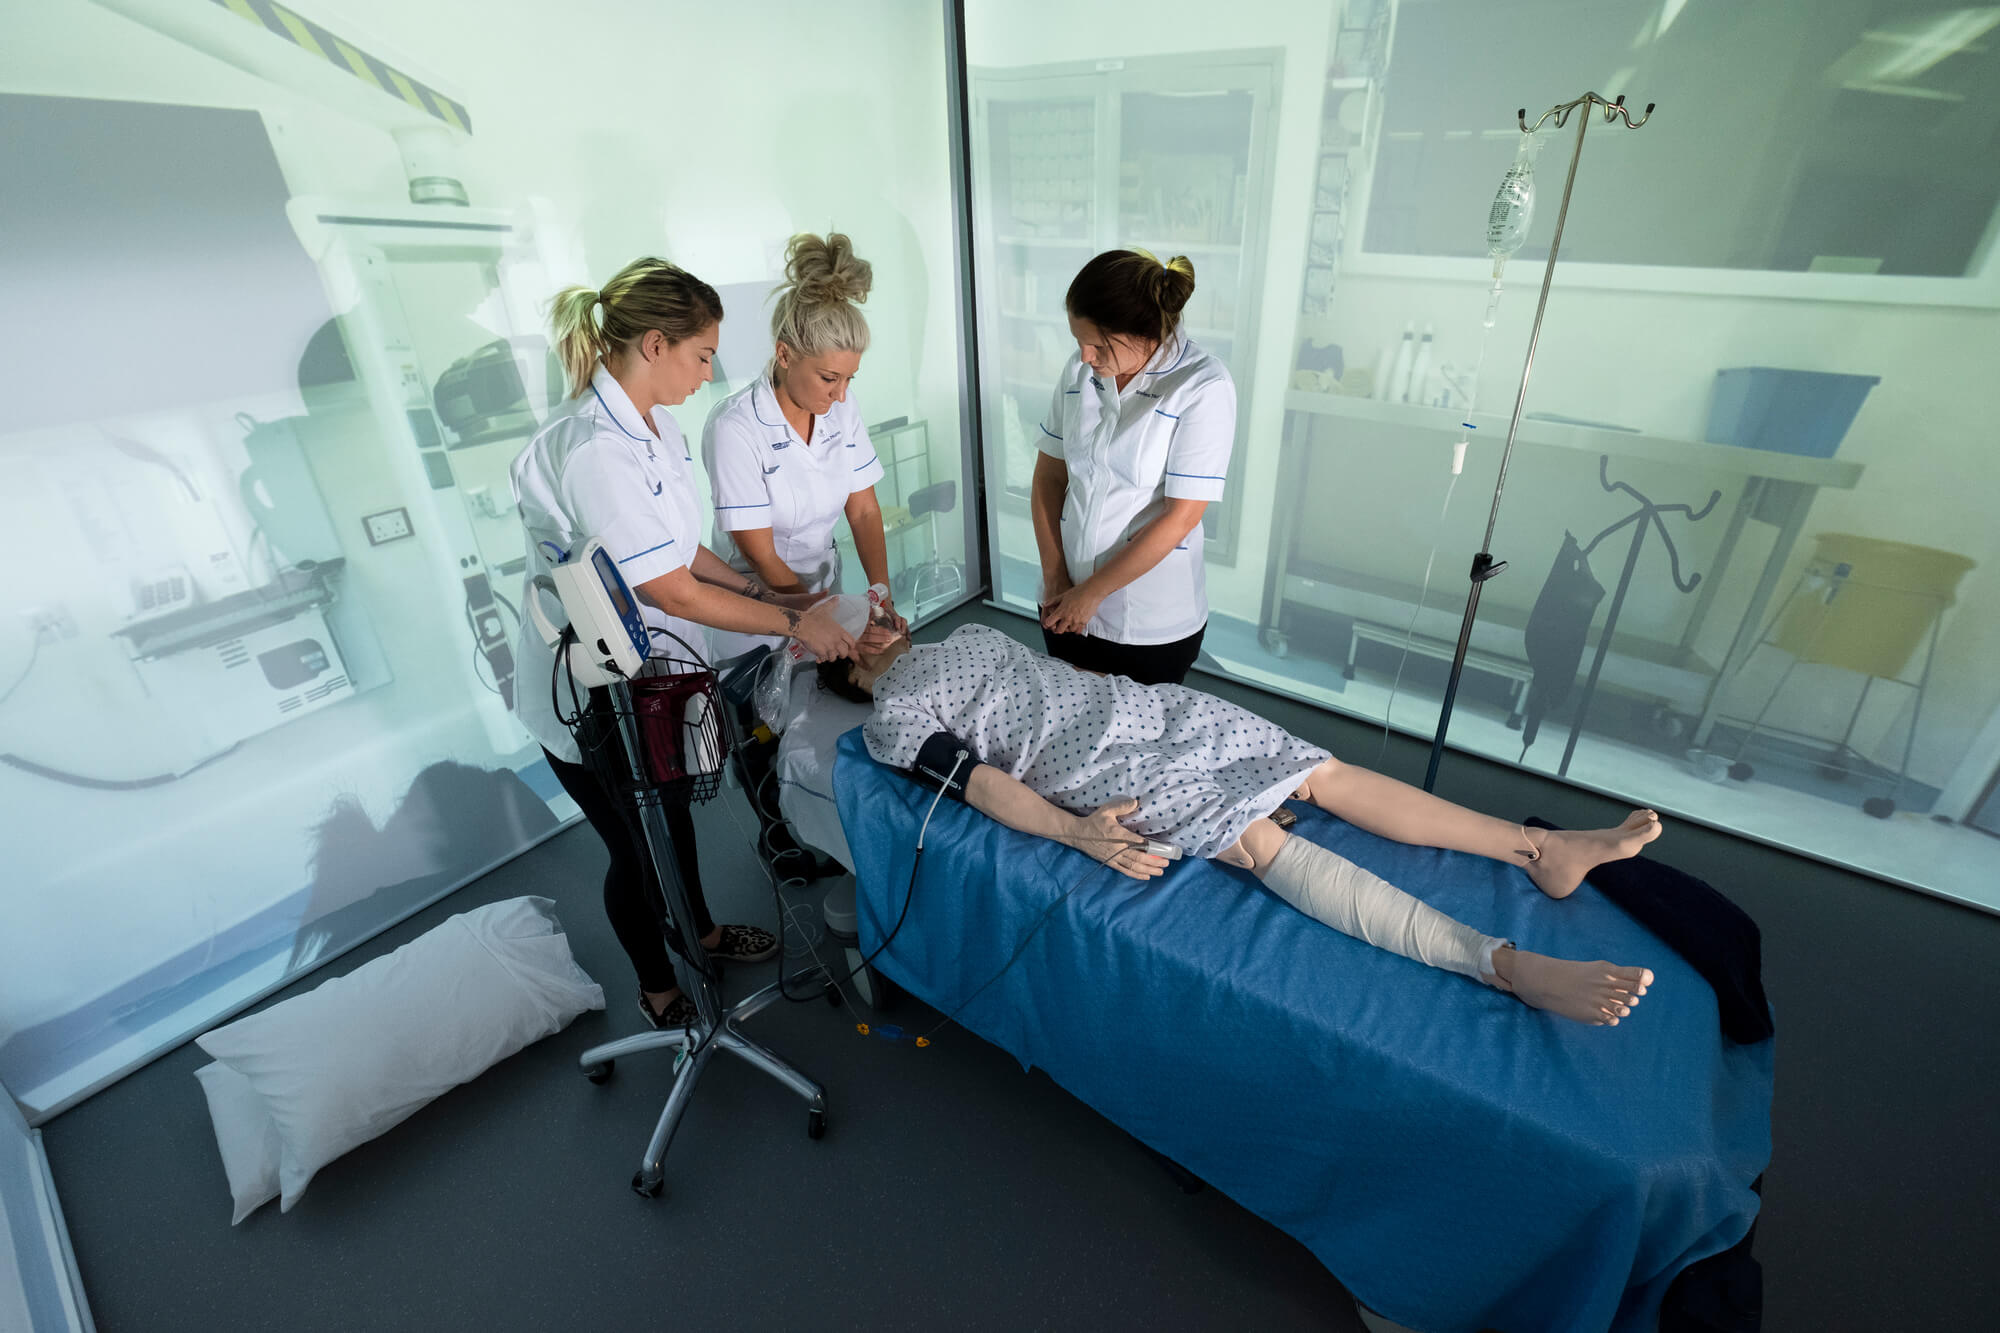 Students examining a patient in the immersive suite